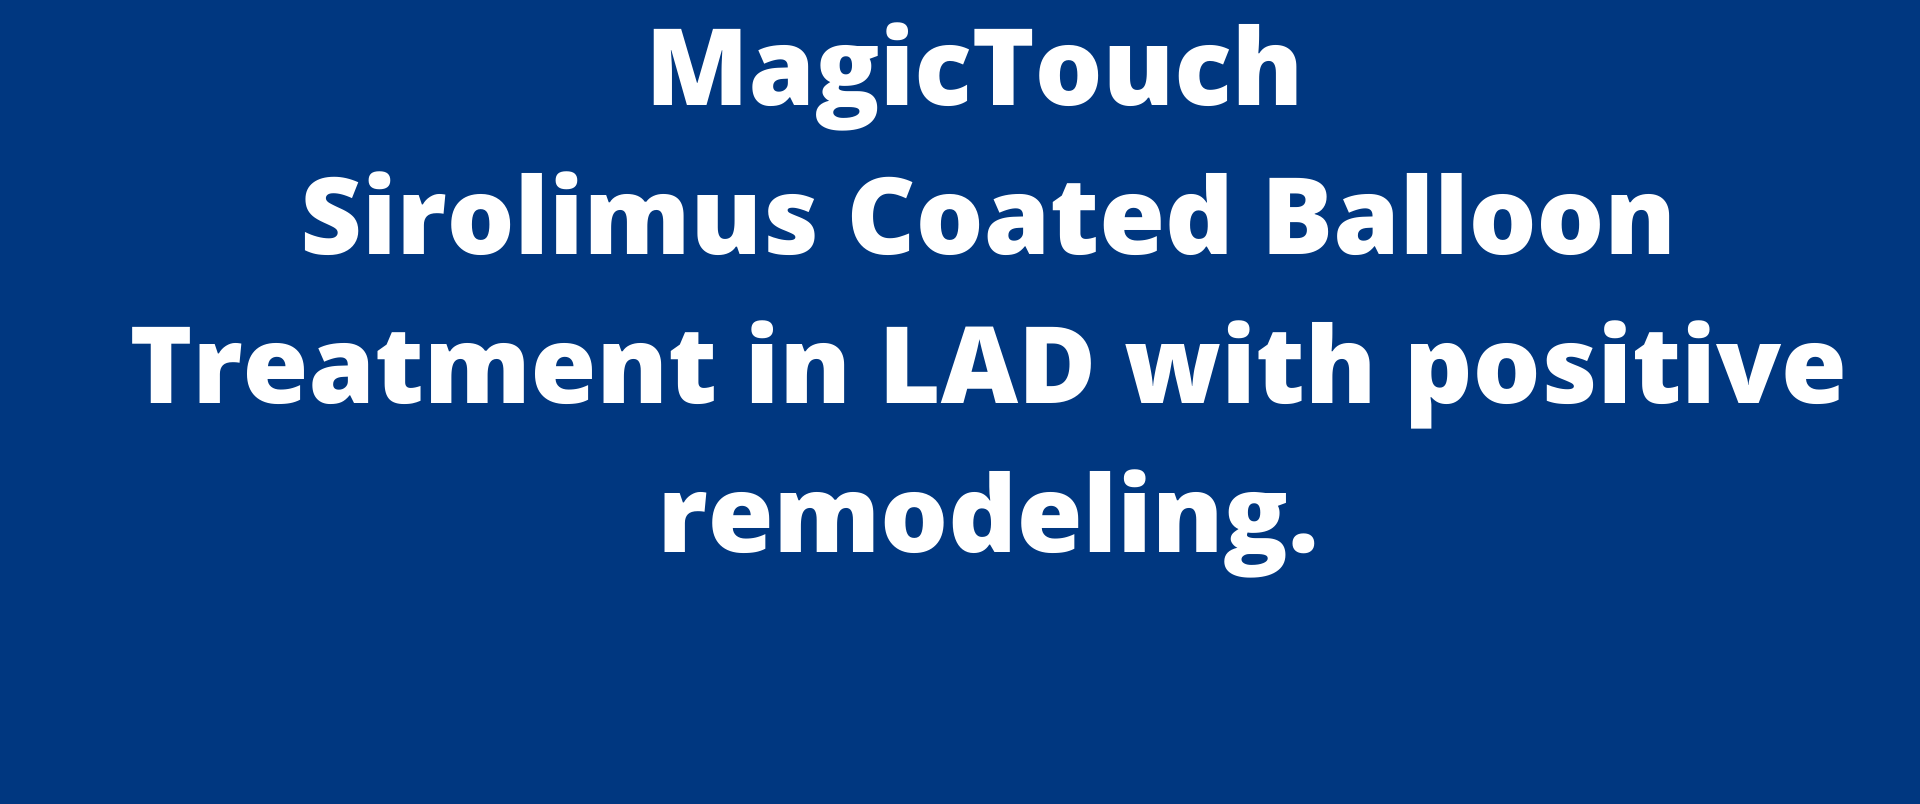 MagicTouch Sirolimus Coated Balloon Treatment in LAD with positive remodeling